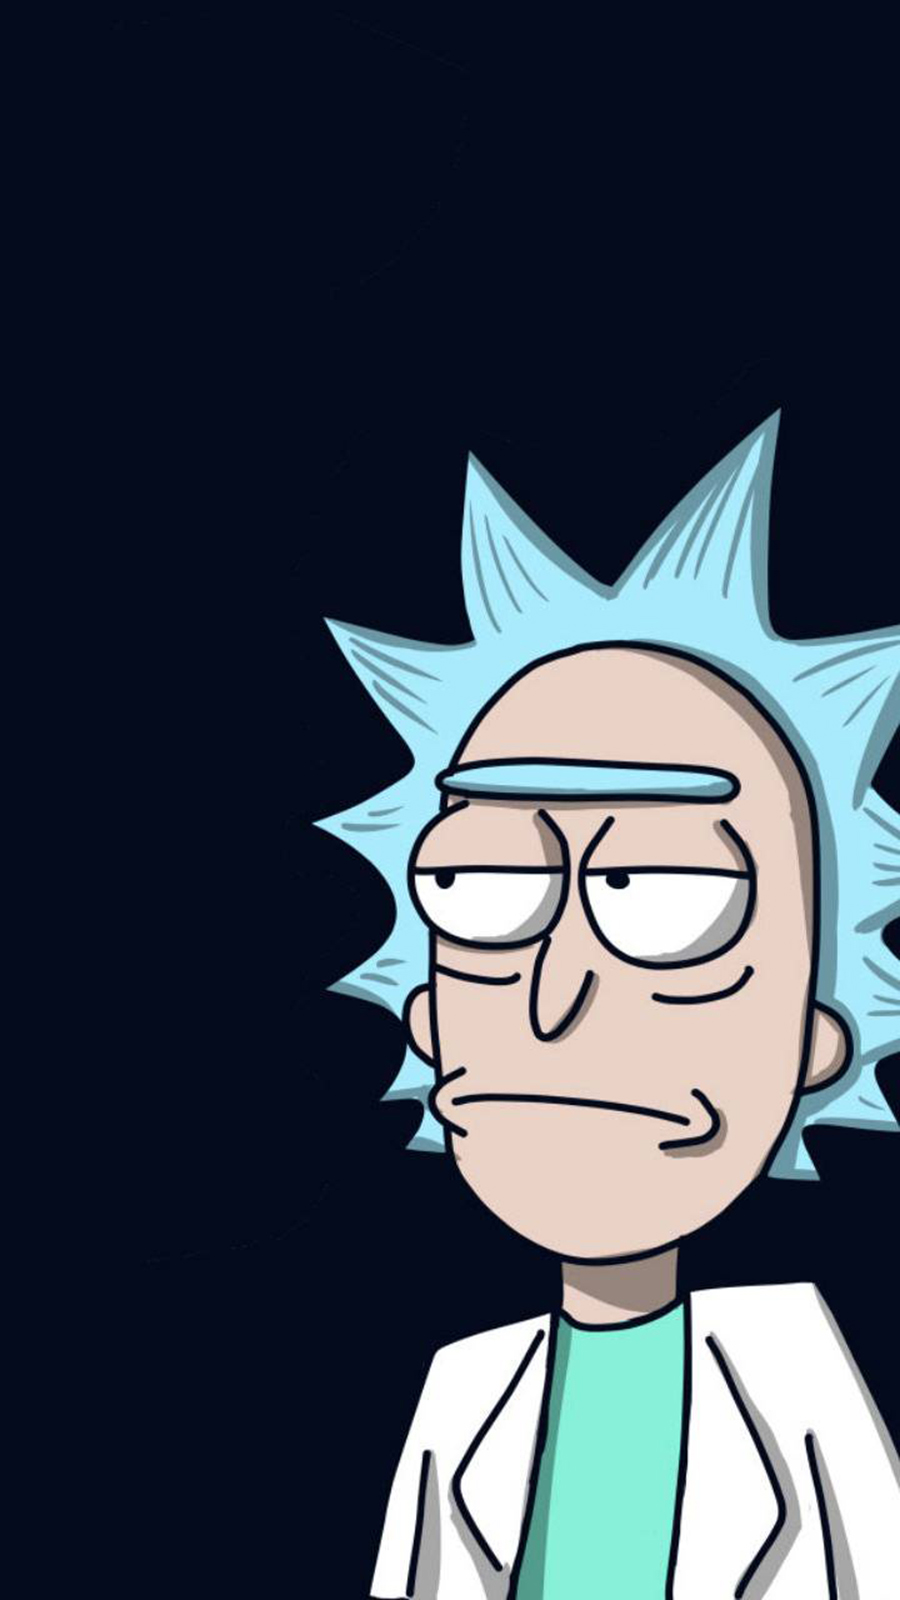 Rick & Morty Wallpapers Free Download For Your Device